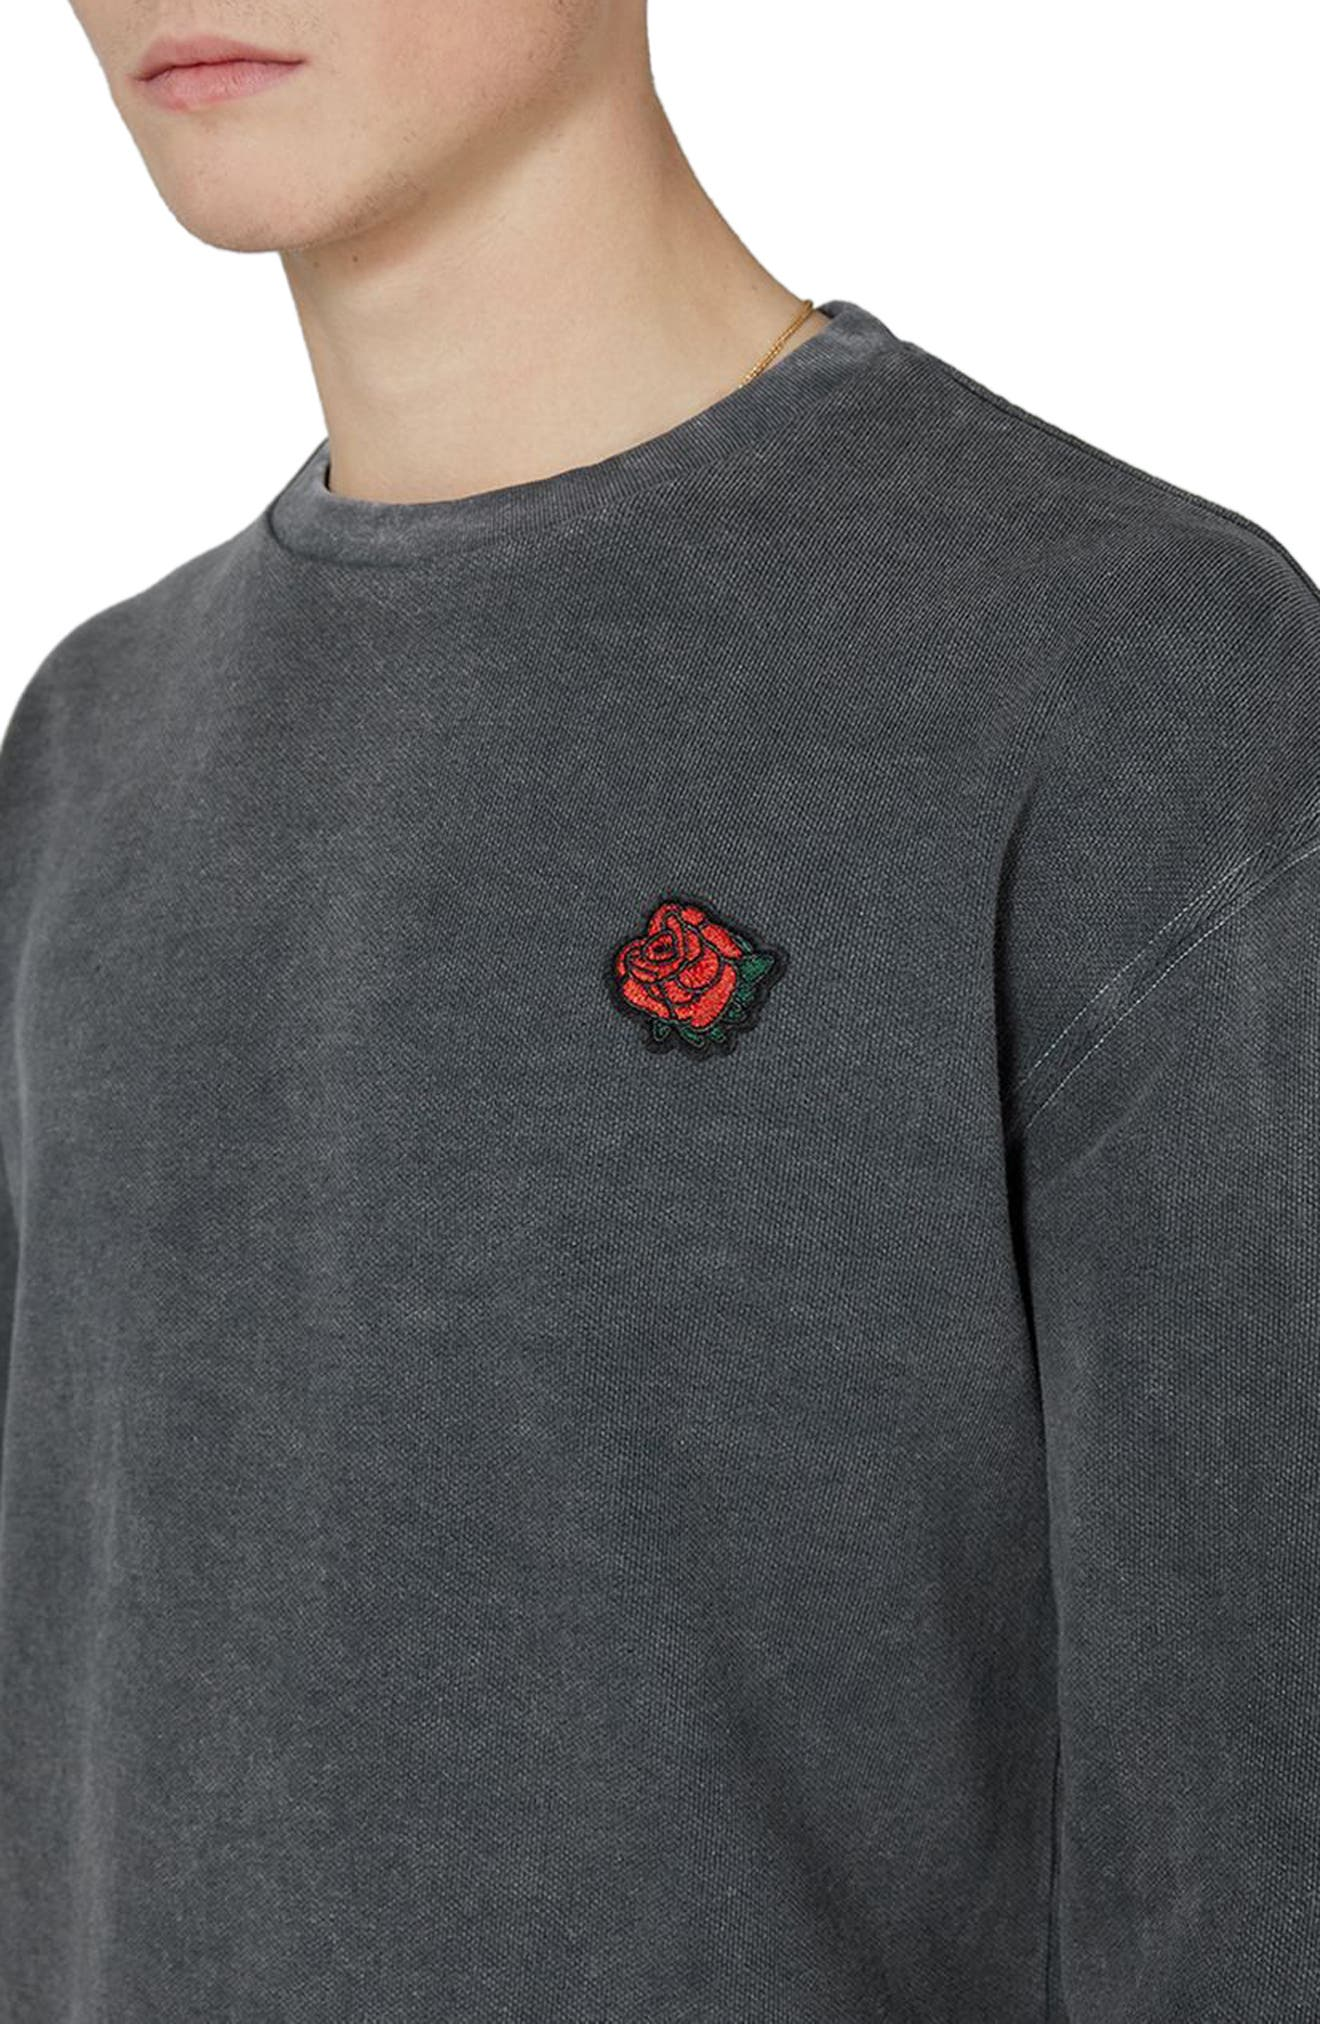 Percy Rose Embroidered Sweatshirt,                             Alternate thumbnail 3, color,